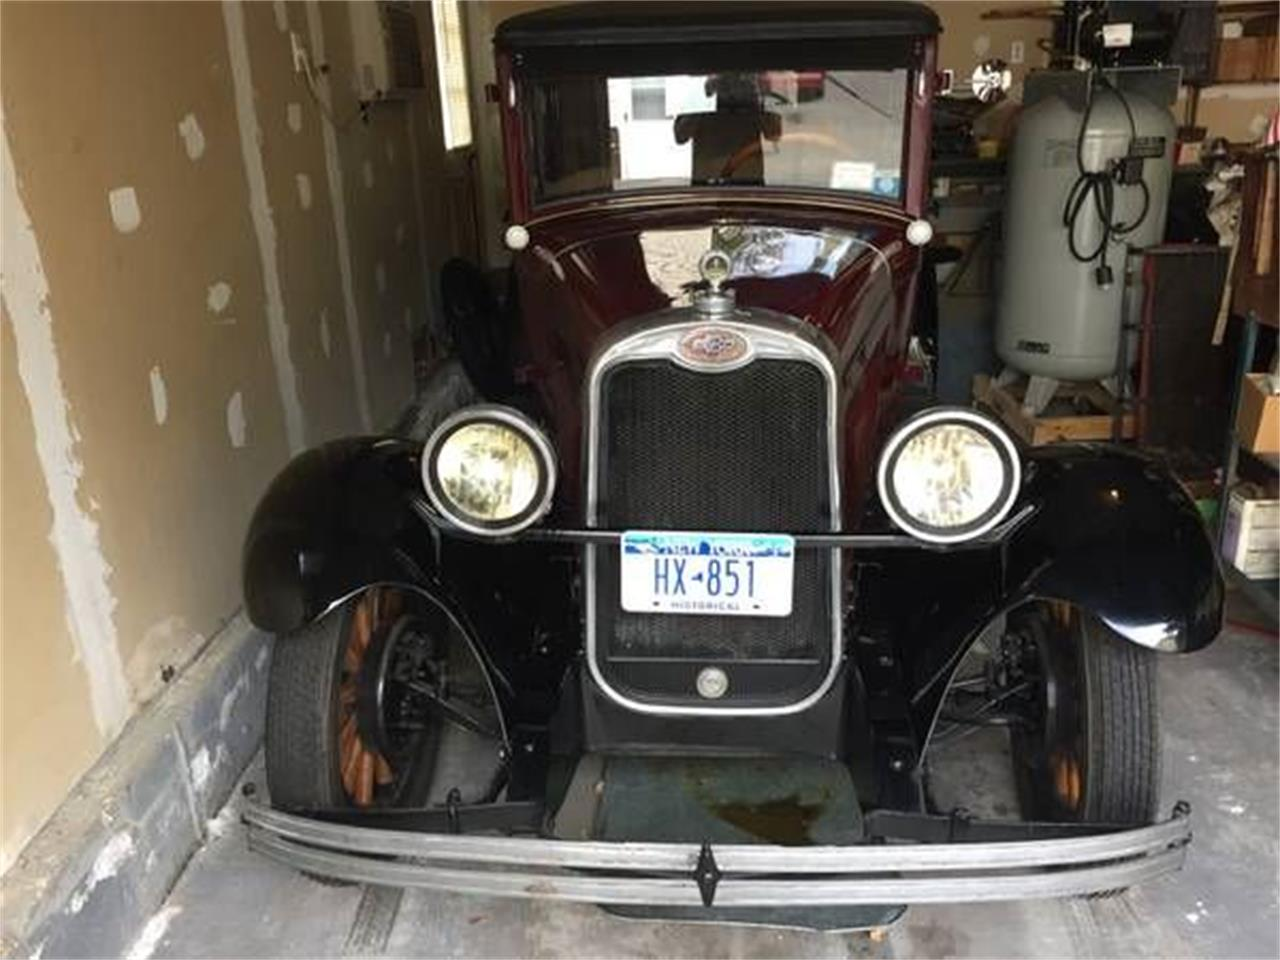 1928 Chevrolet Sedan for sale in Cadillac, MI – photo 6